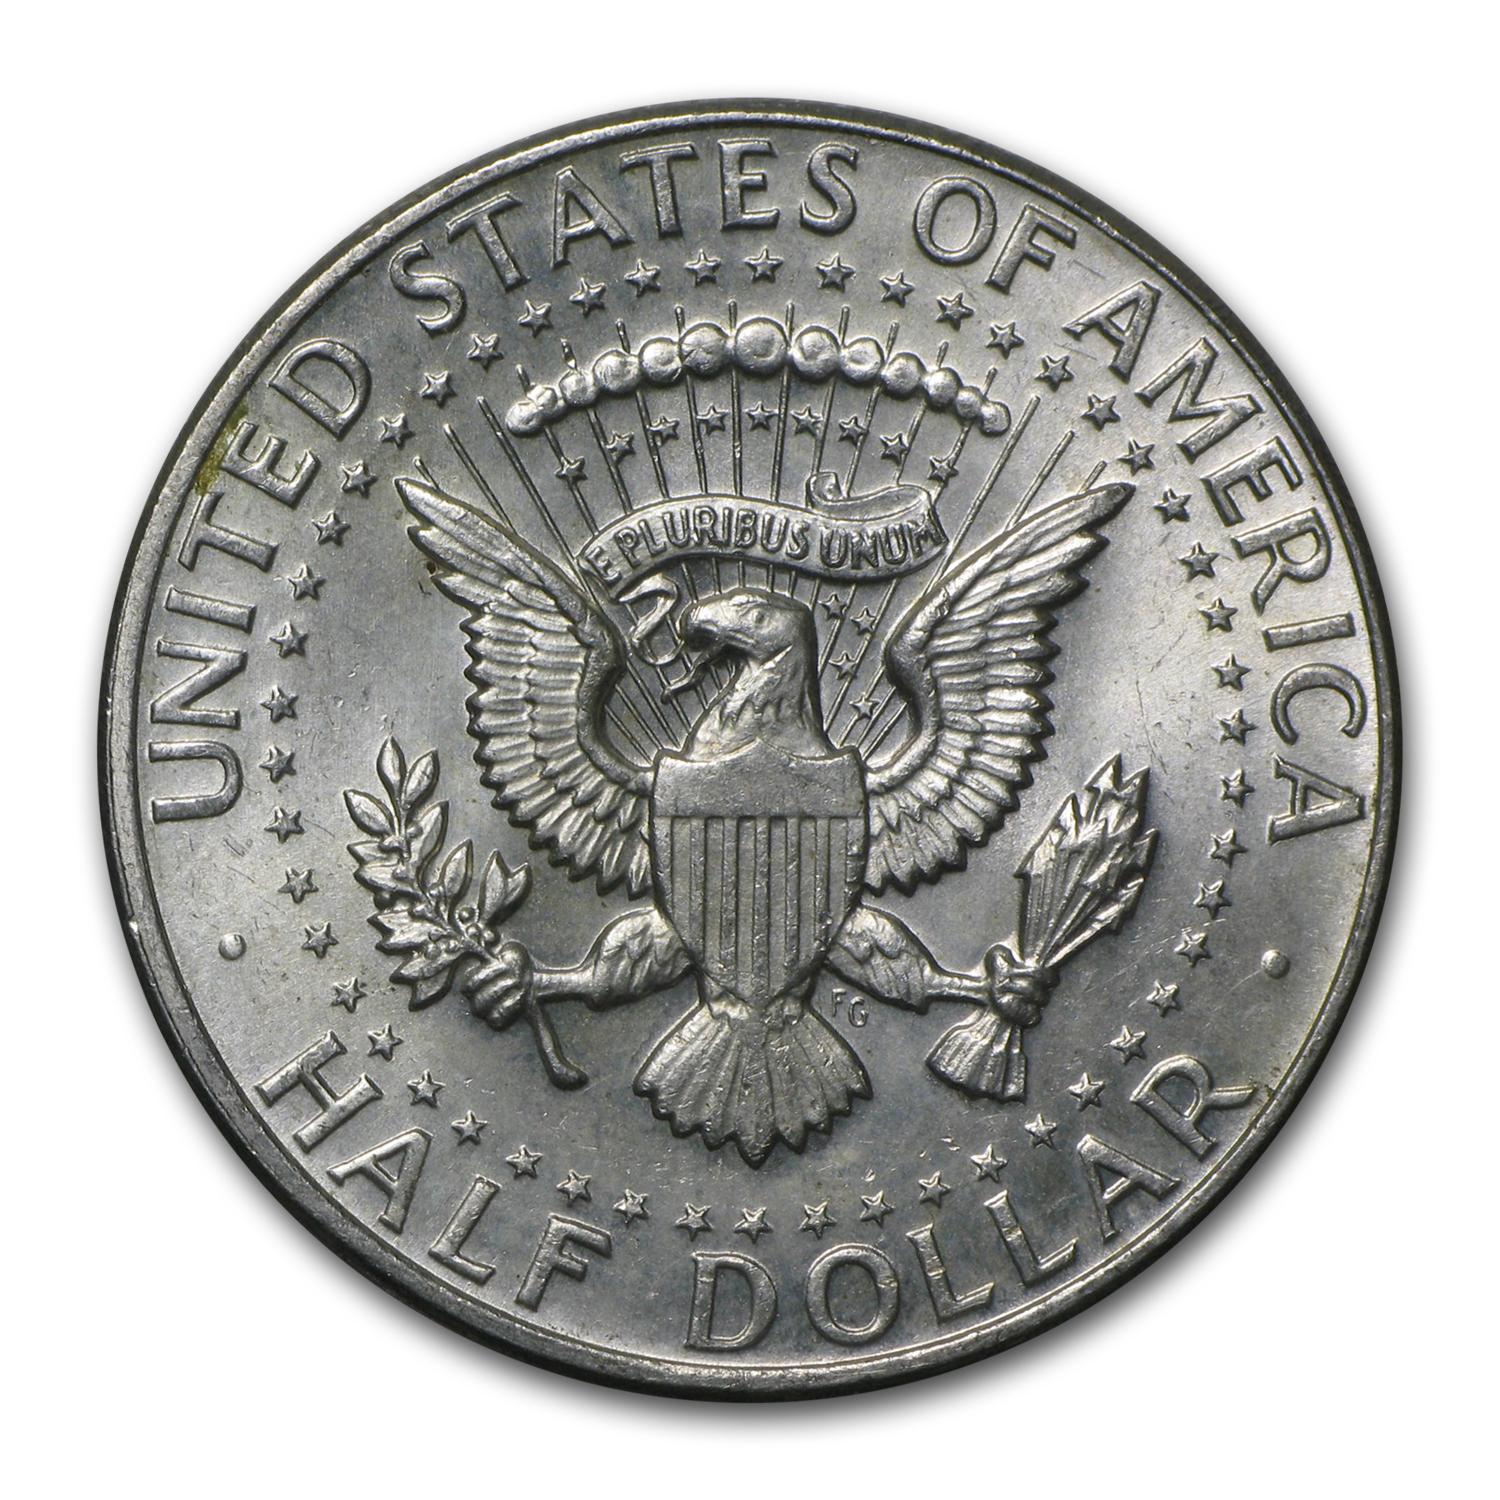 $1 Face Value 1964 Kennedy Half-Dollars - 90% Silver (Avg. Circ.)